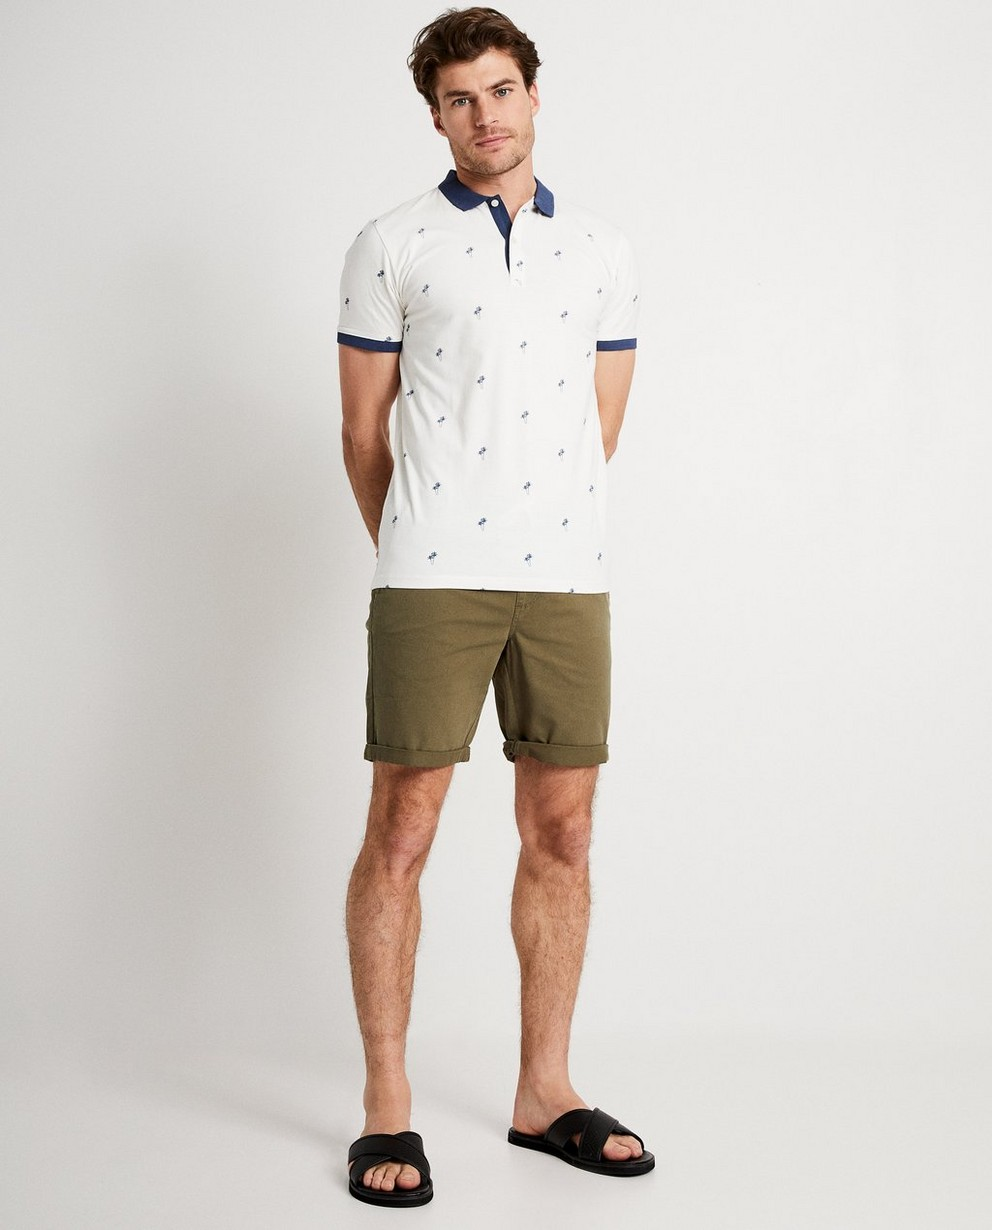 Witte polo met palmboomprint - allover print - JBC